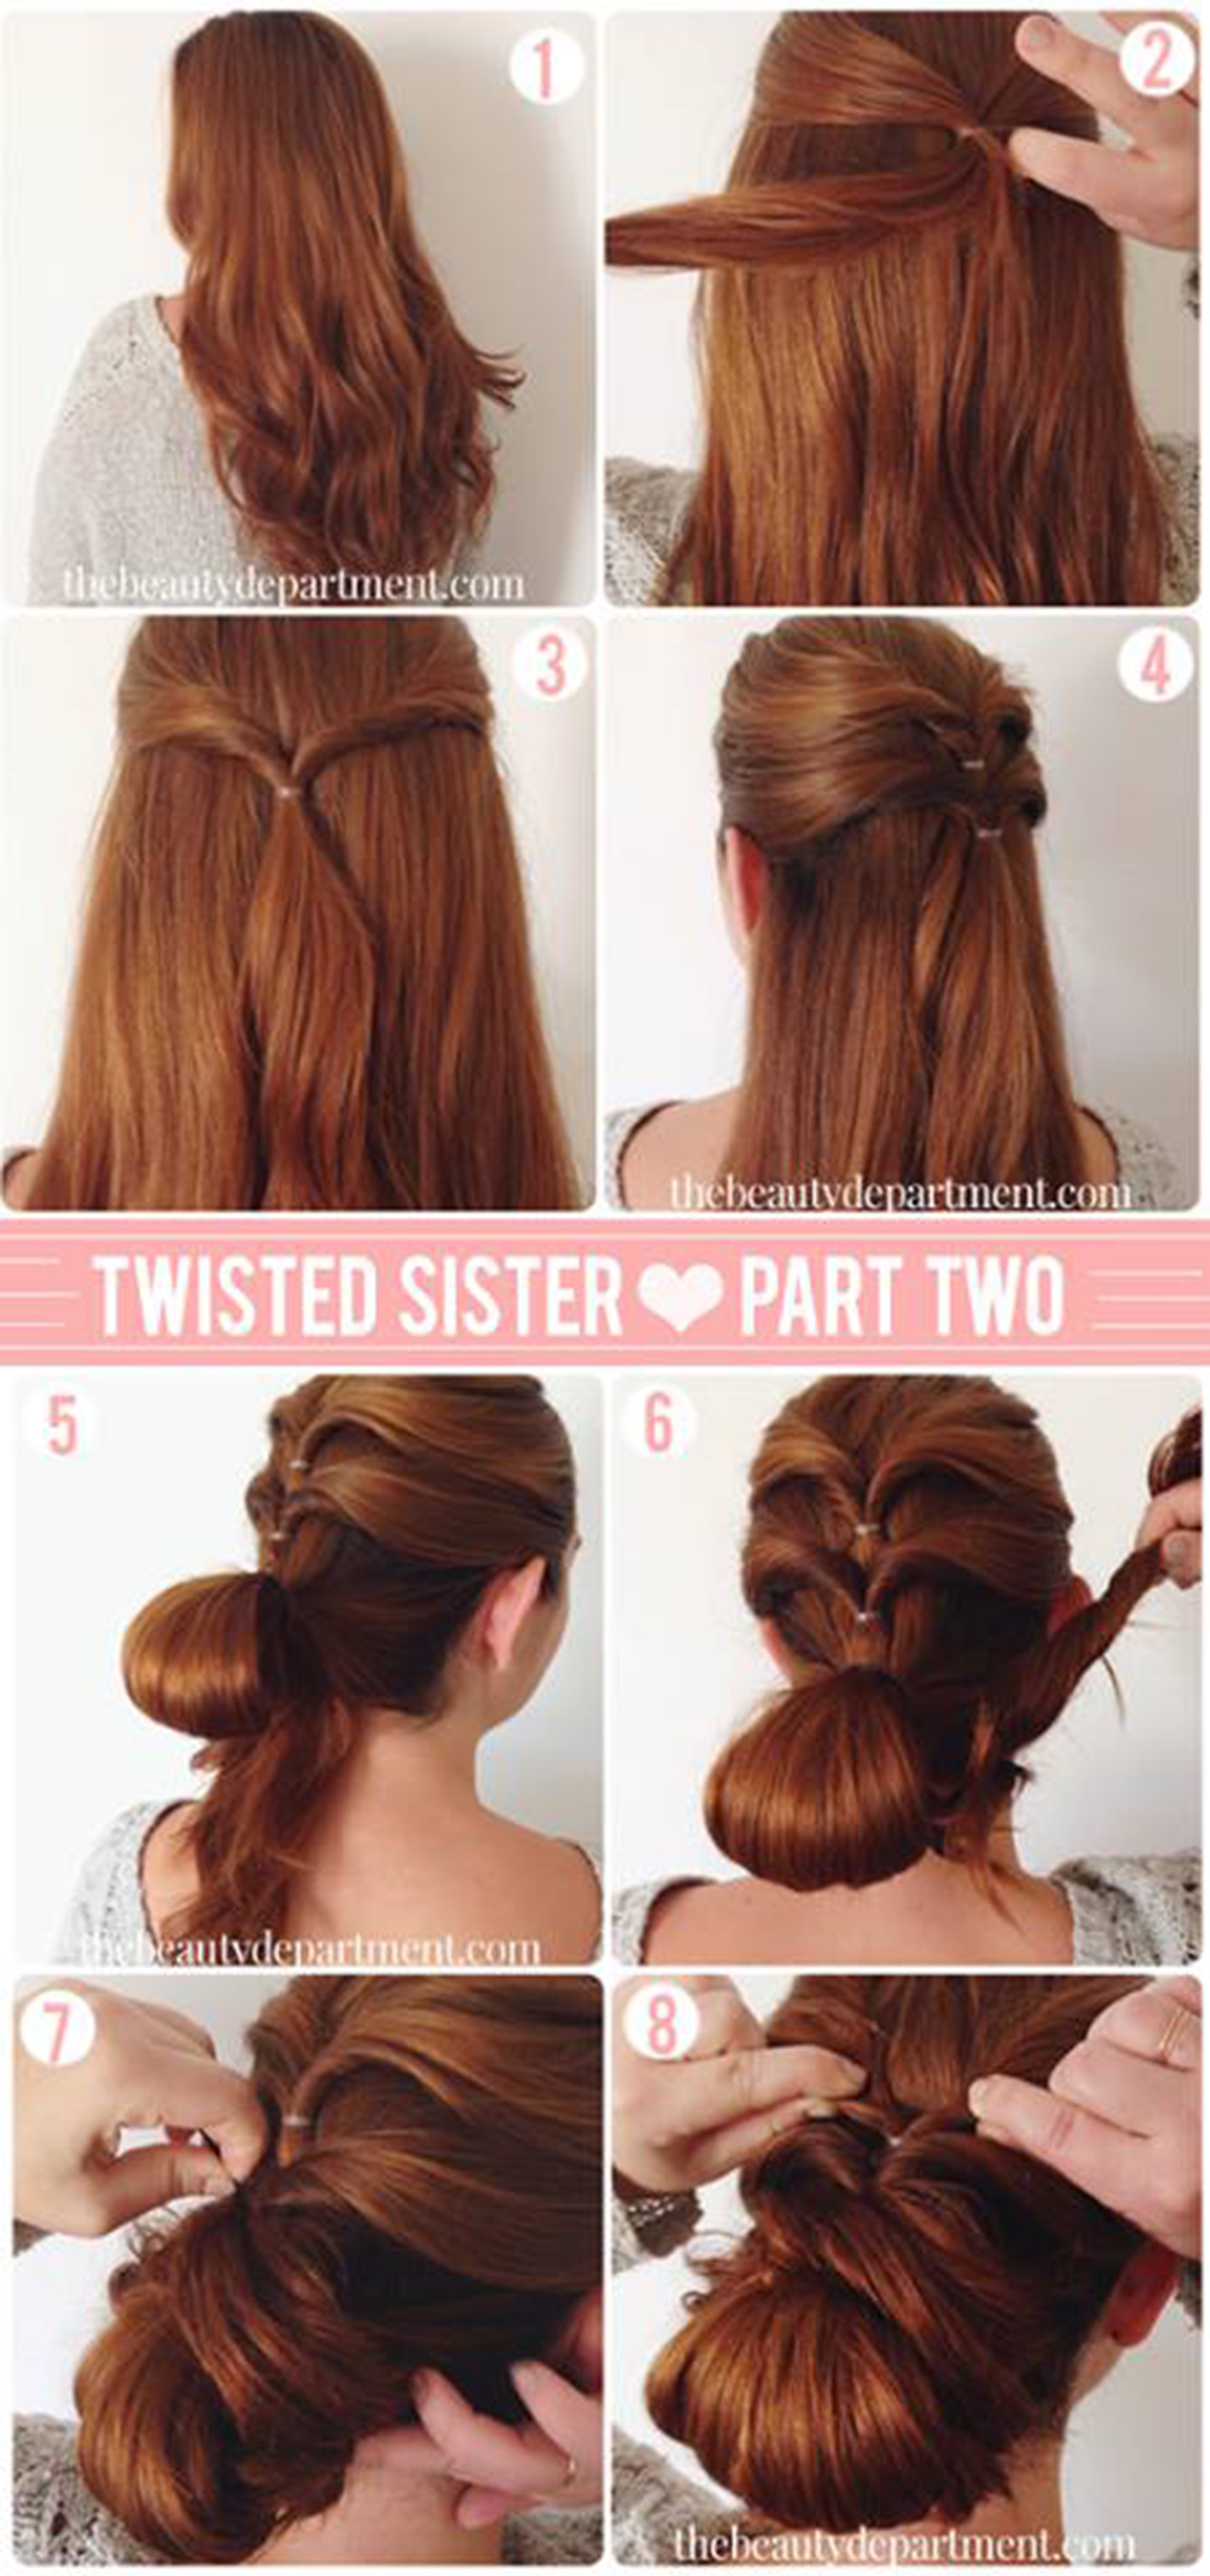 10+ easy & quick hairstyles for parties – step by step tutorial